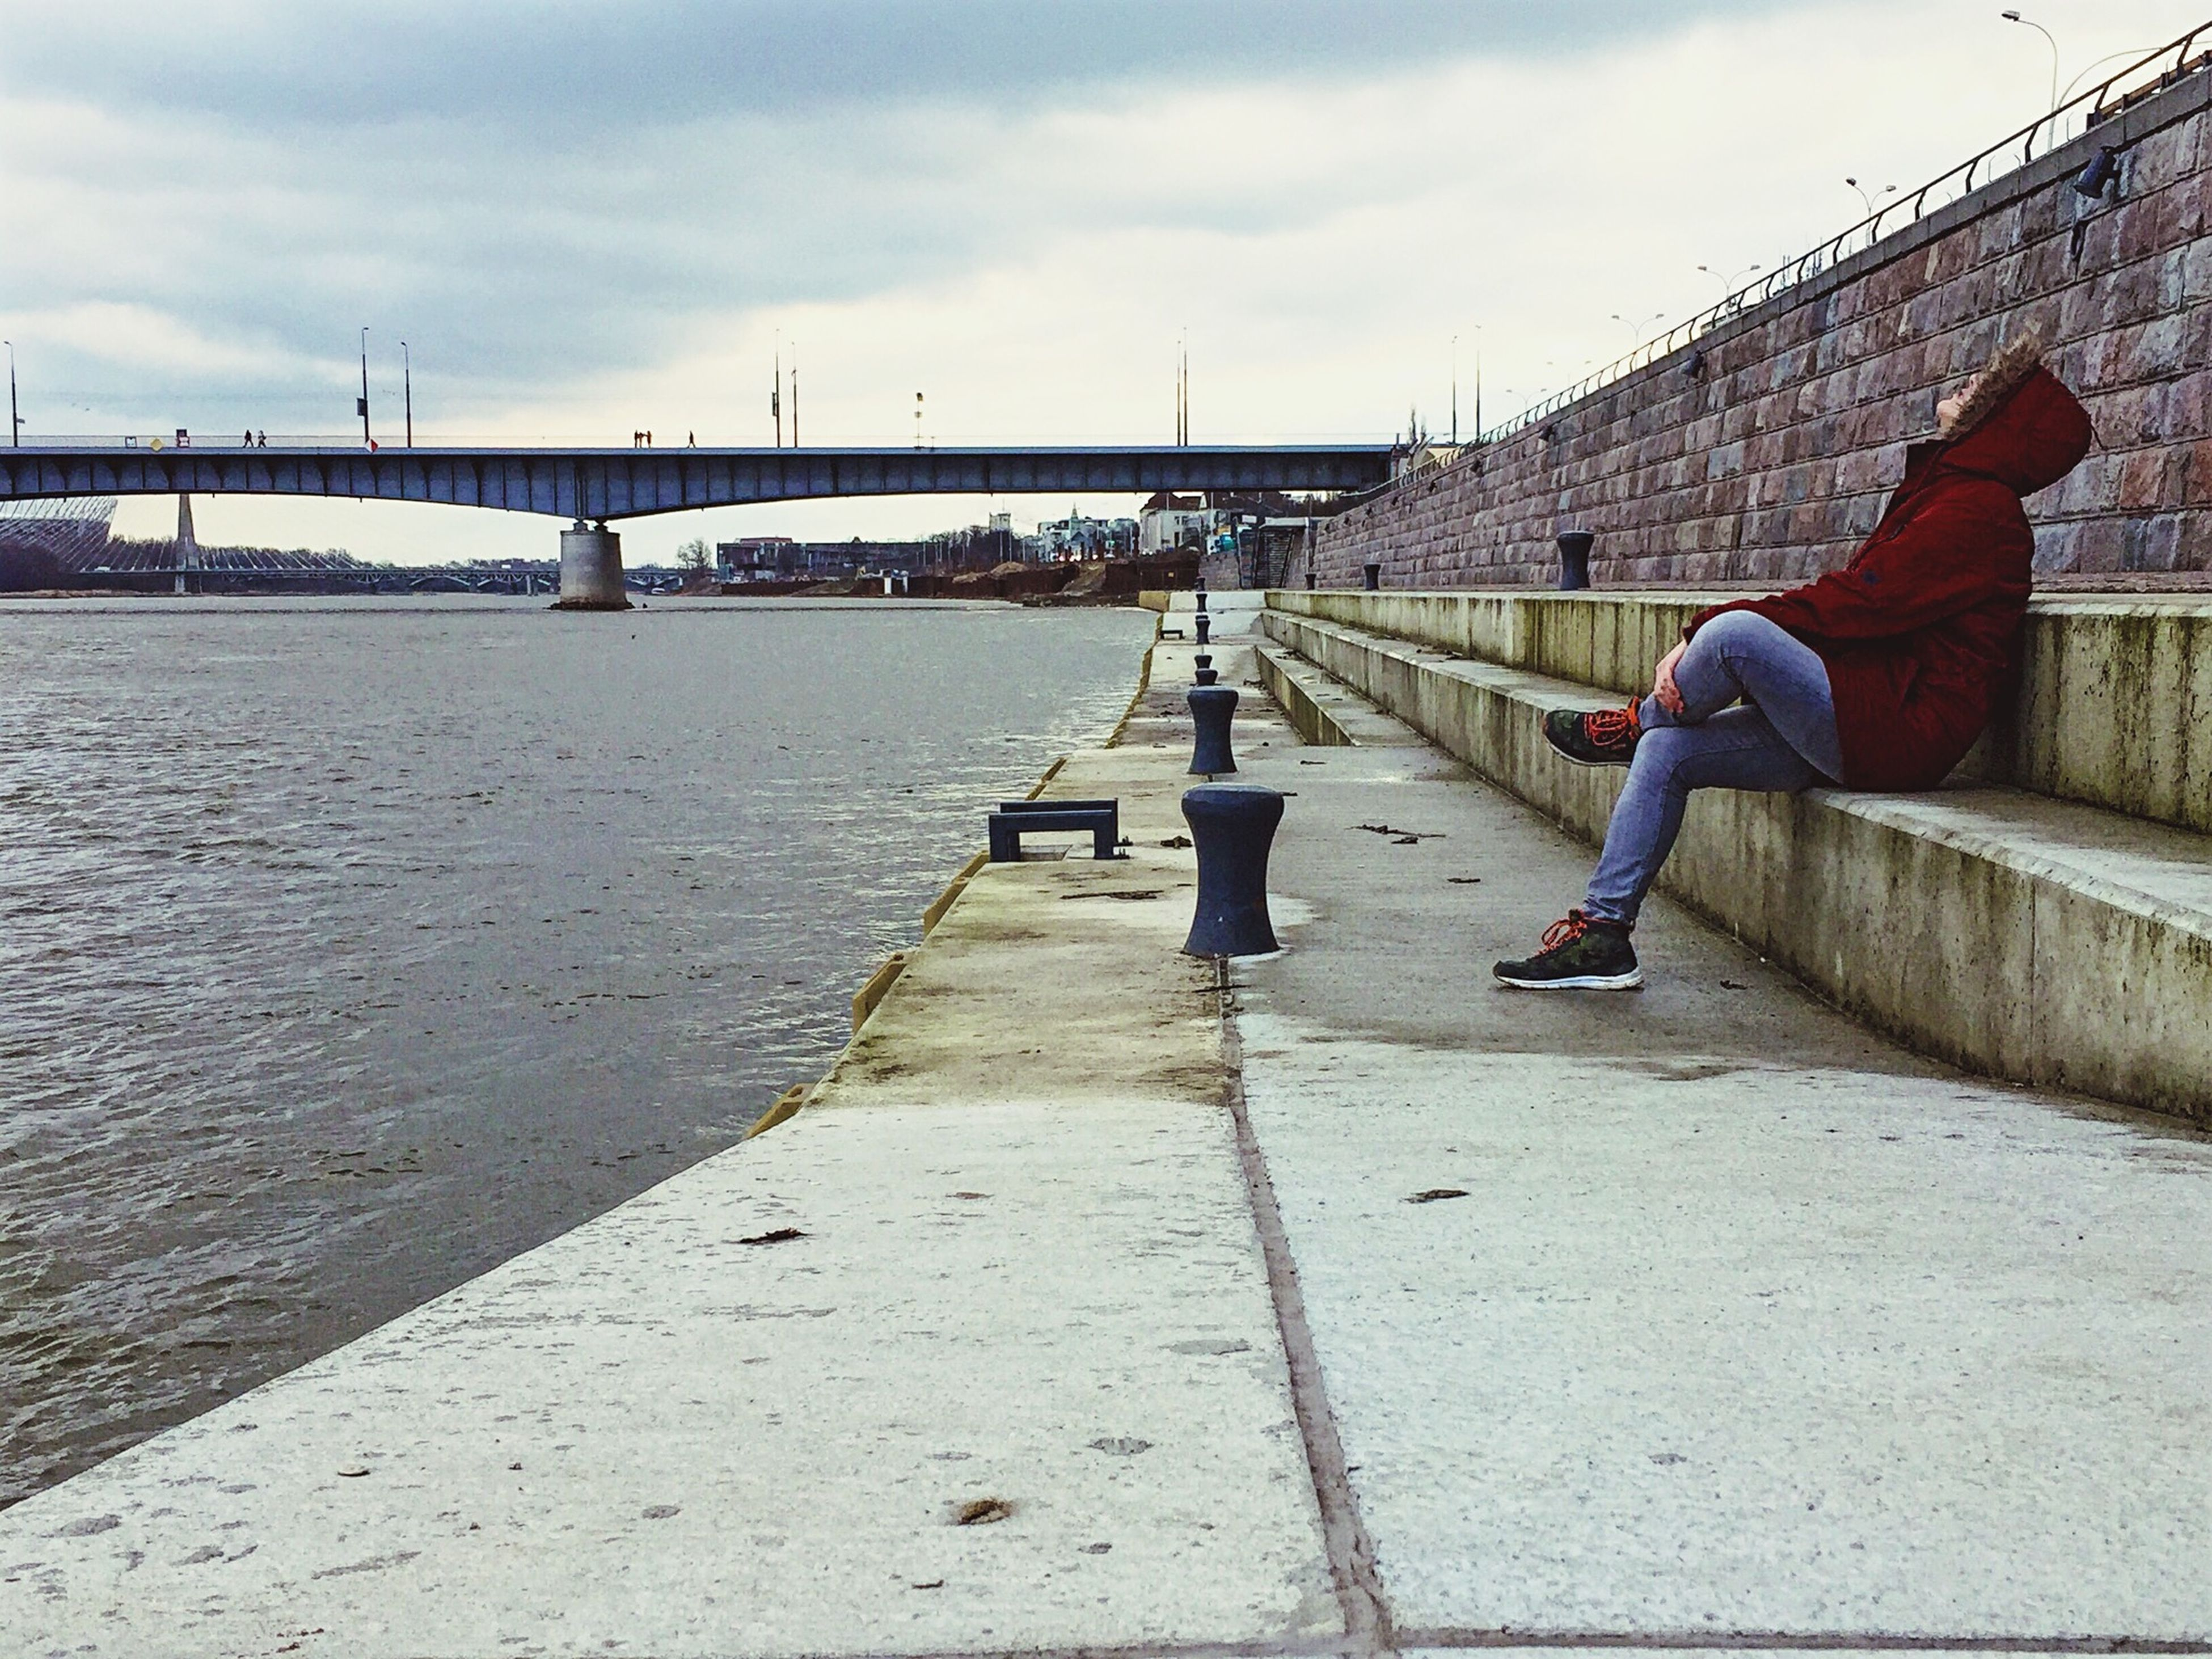 lifestyles, leisure activity, men, sky, full length, rear view, built structure, water, architecture, person, walking, cloud - sky, bridge - man made structure, casual clothing, standing, railing, connection